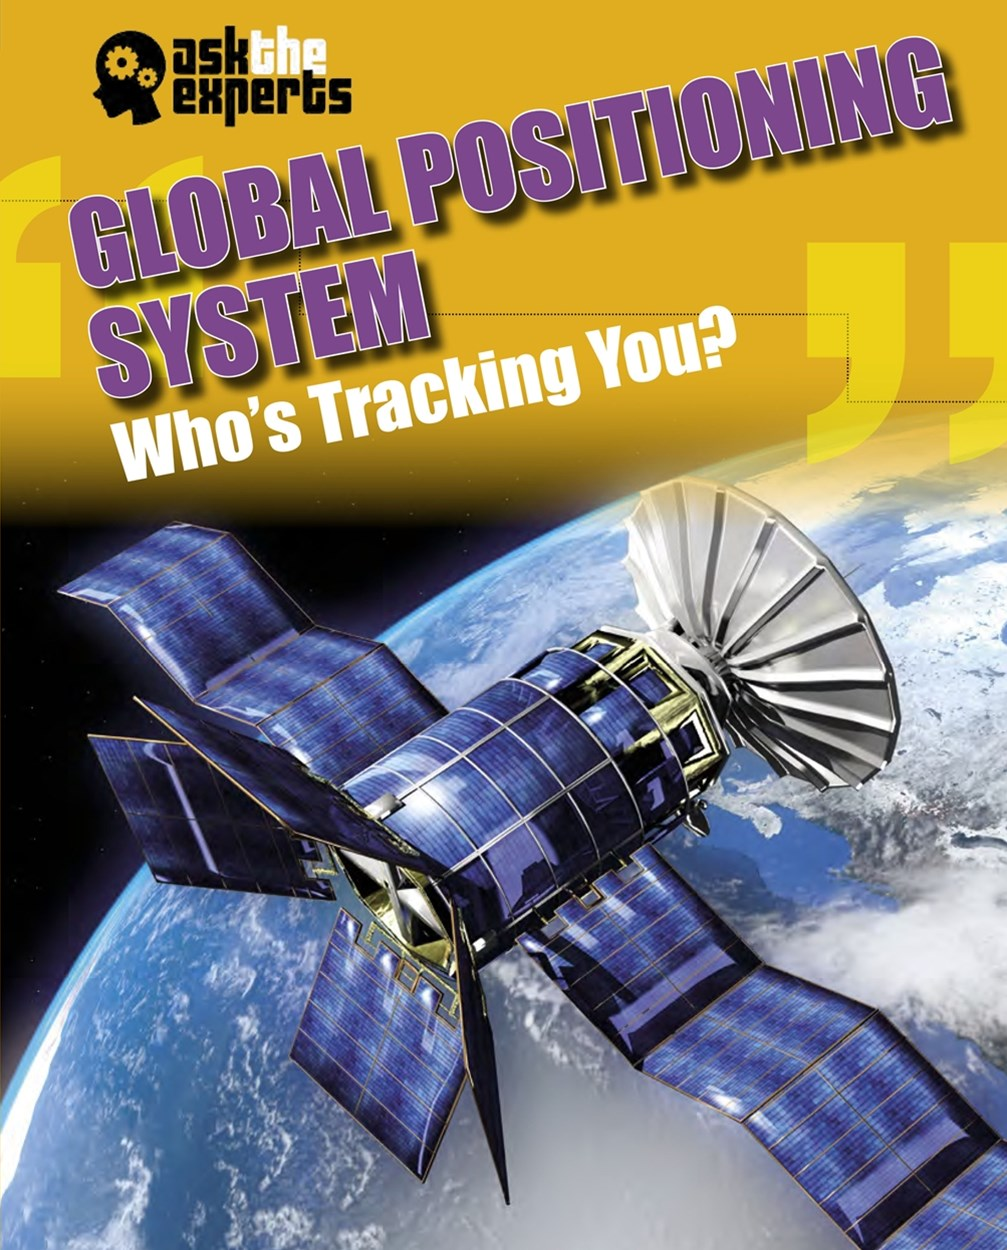 Ask the Experts: Global Positioning System: Who's Tracking You?